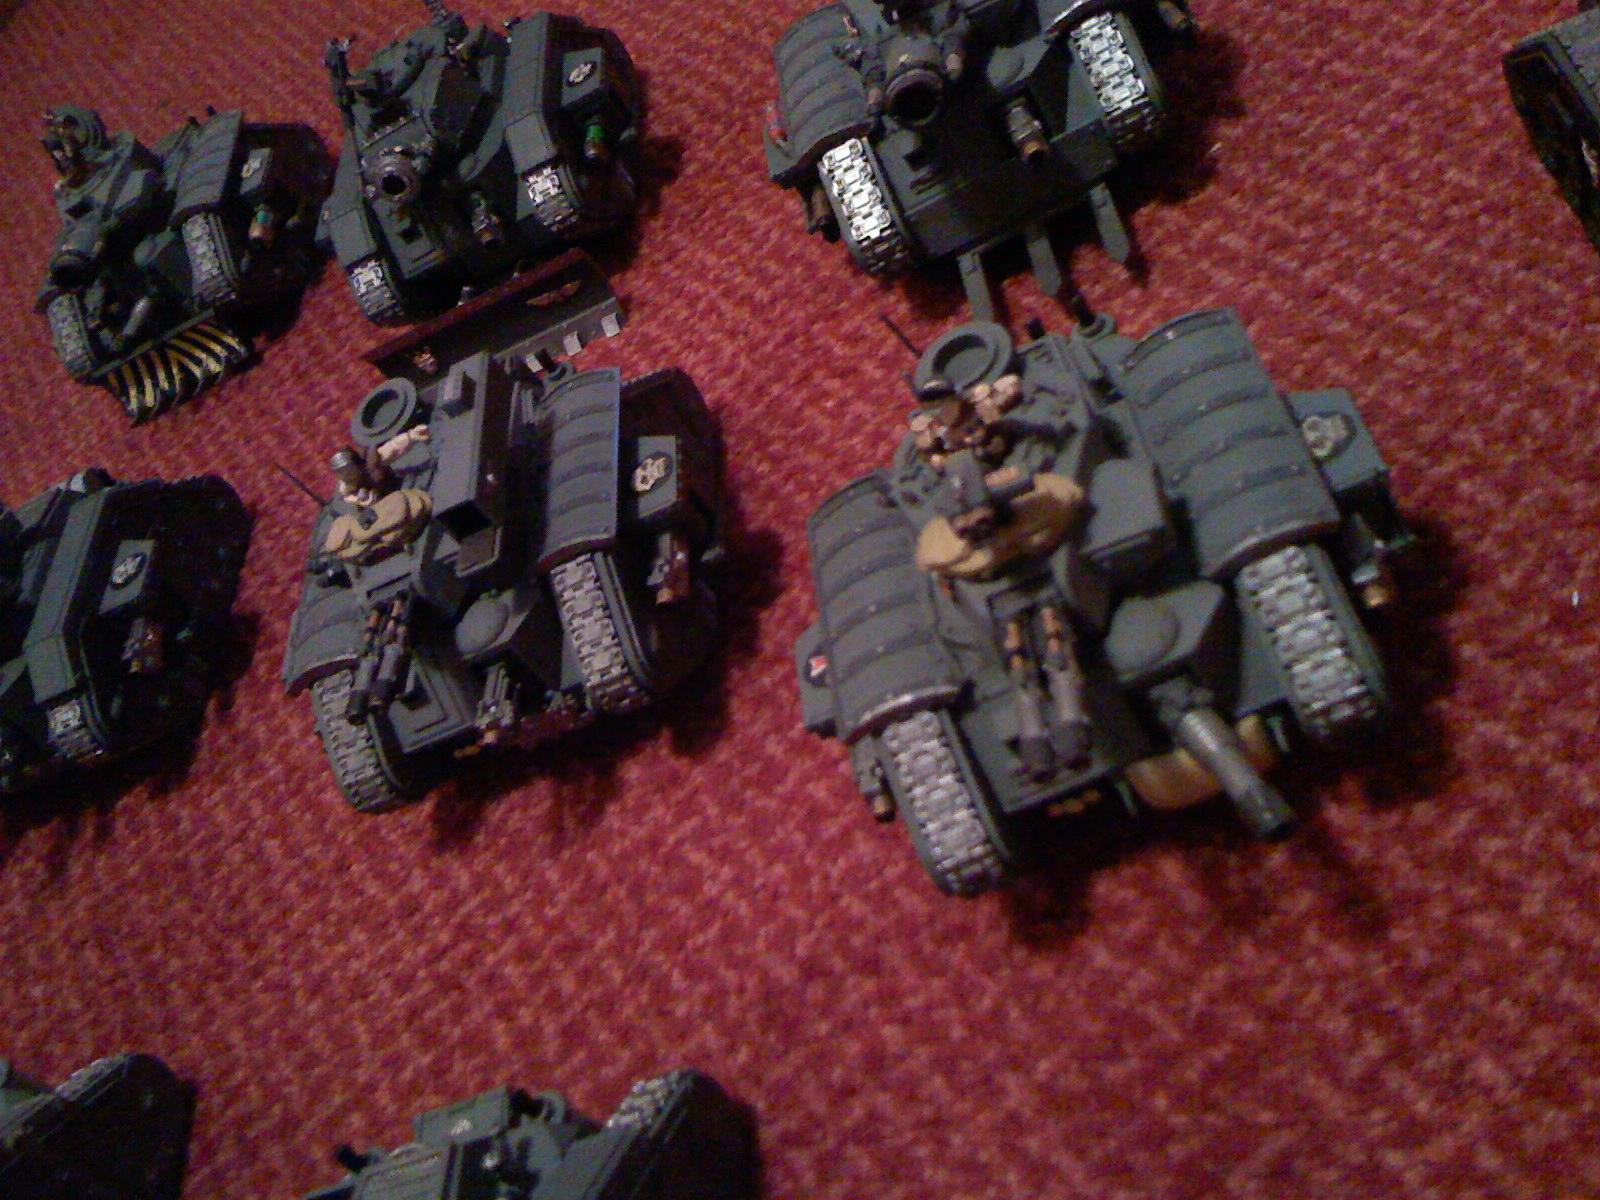 Armored Company, Exterminator, Imperial Guard, Warhammer 40,000